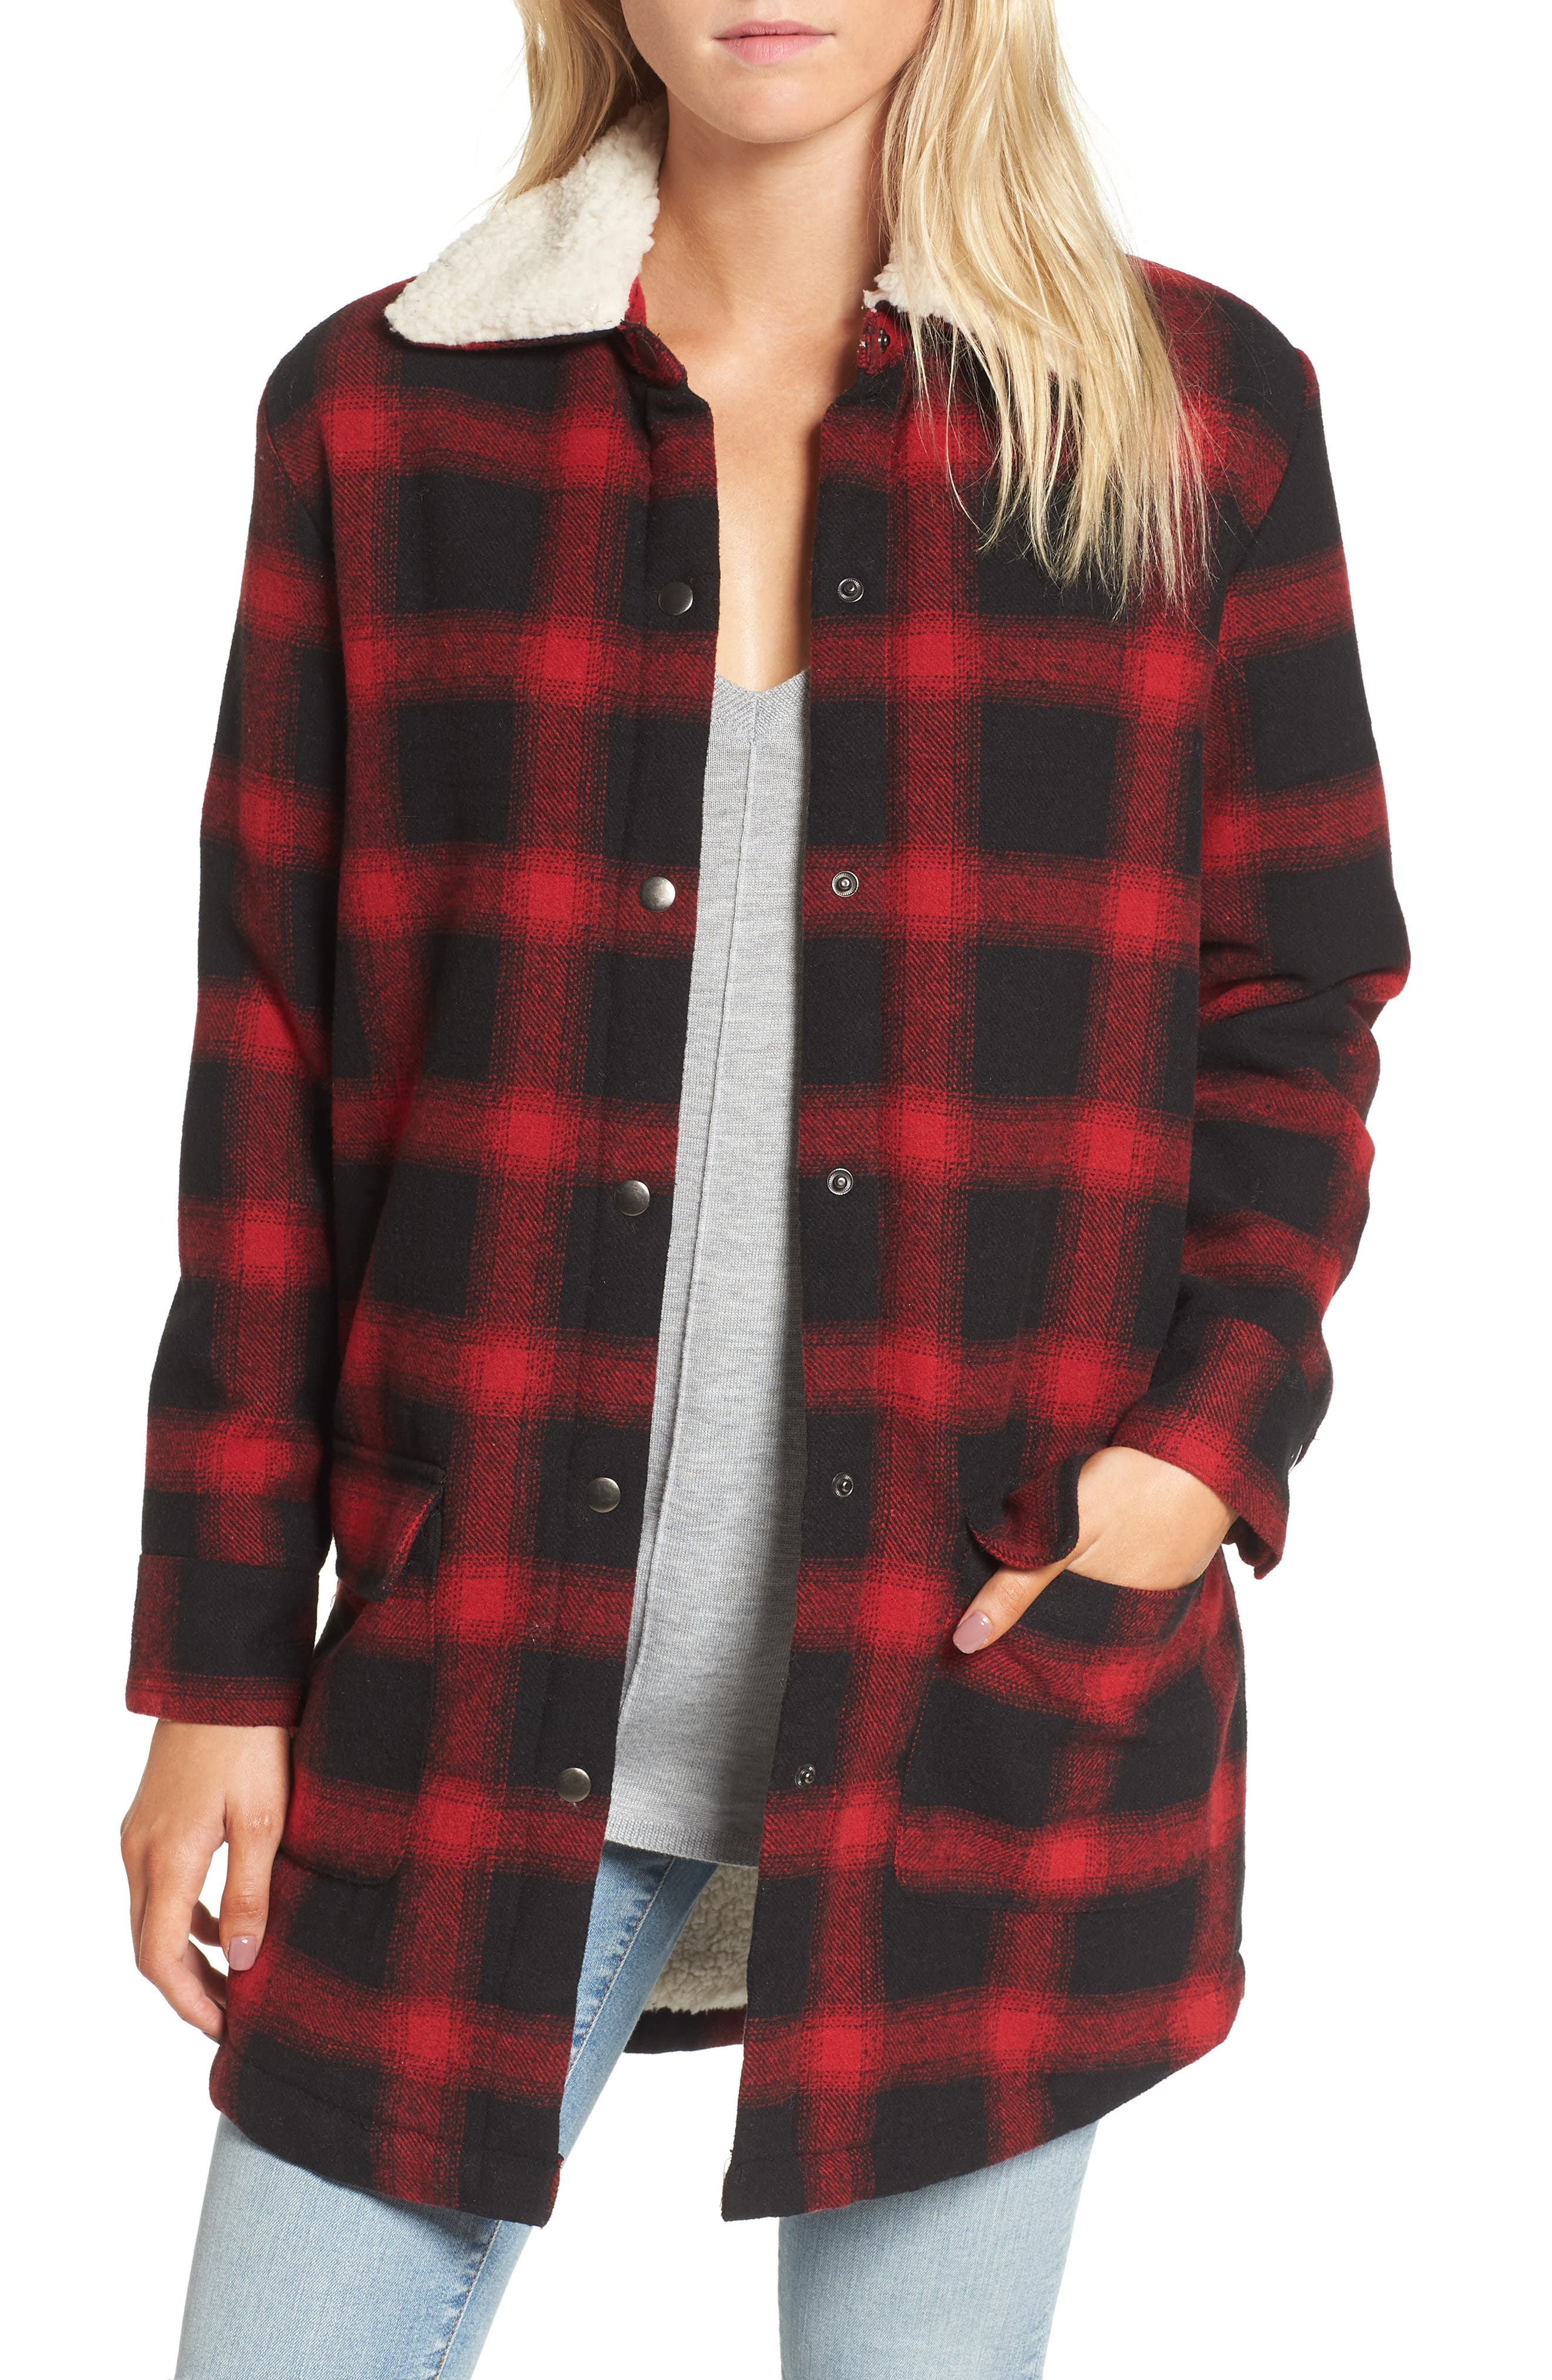 Bradley Fleece Lined Plaid Coat,                             Main thumbnail 1, color,                             Cherry Red